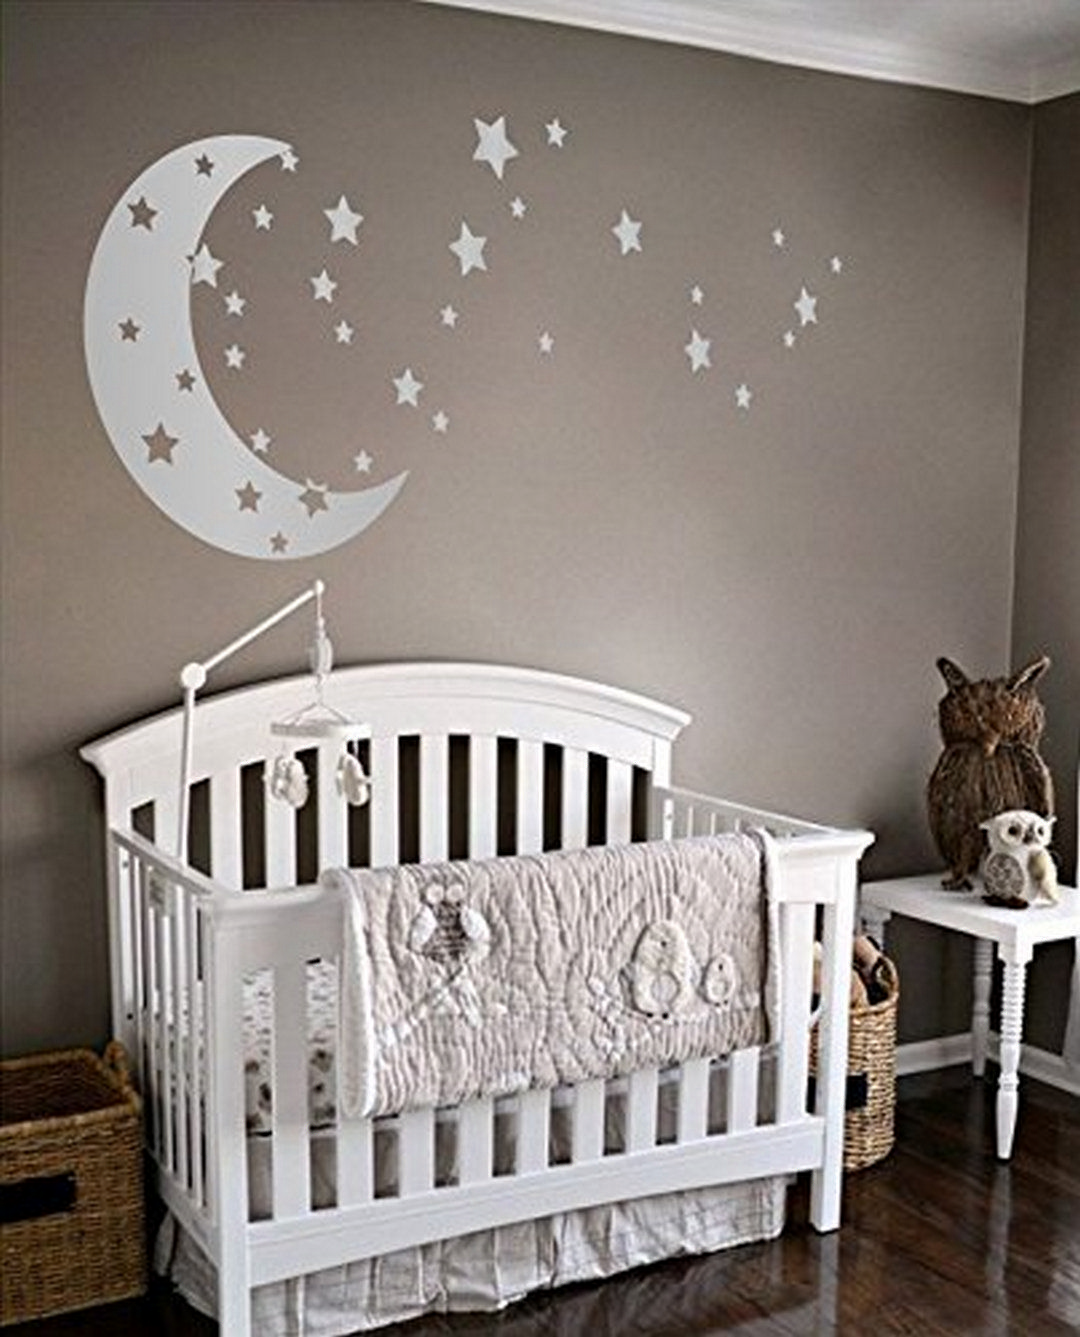 13 Wall Designs Decor Ideas For Nursery: The Moon Box Apartment: Comfortable Apartment With Modern